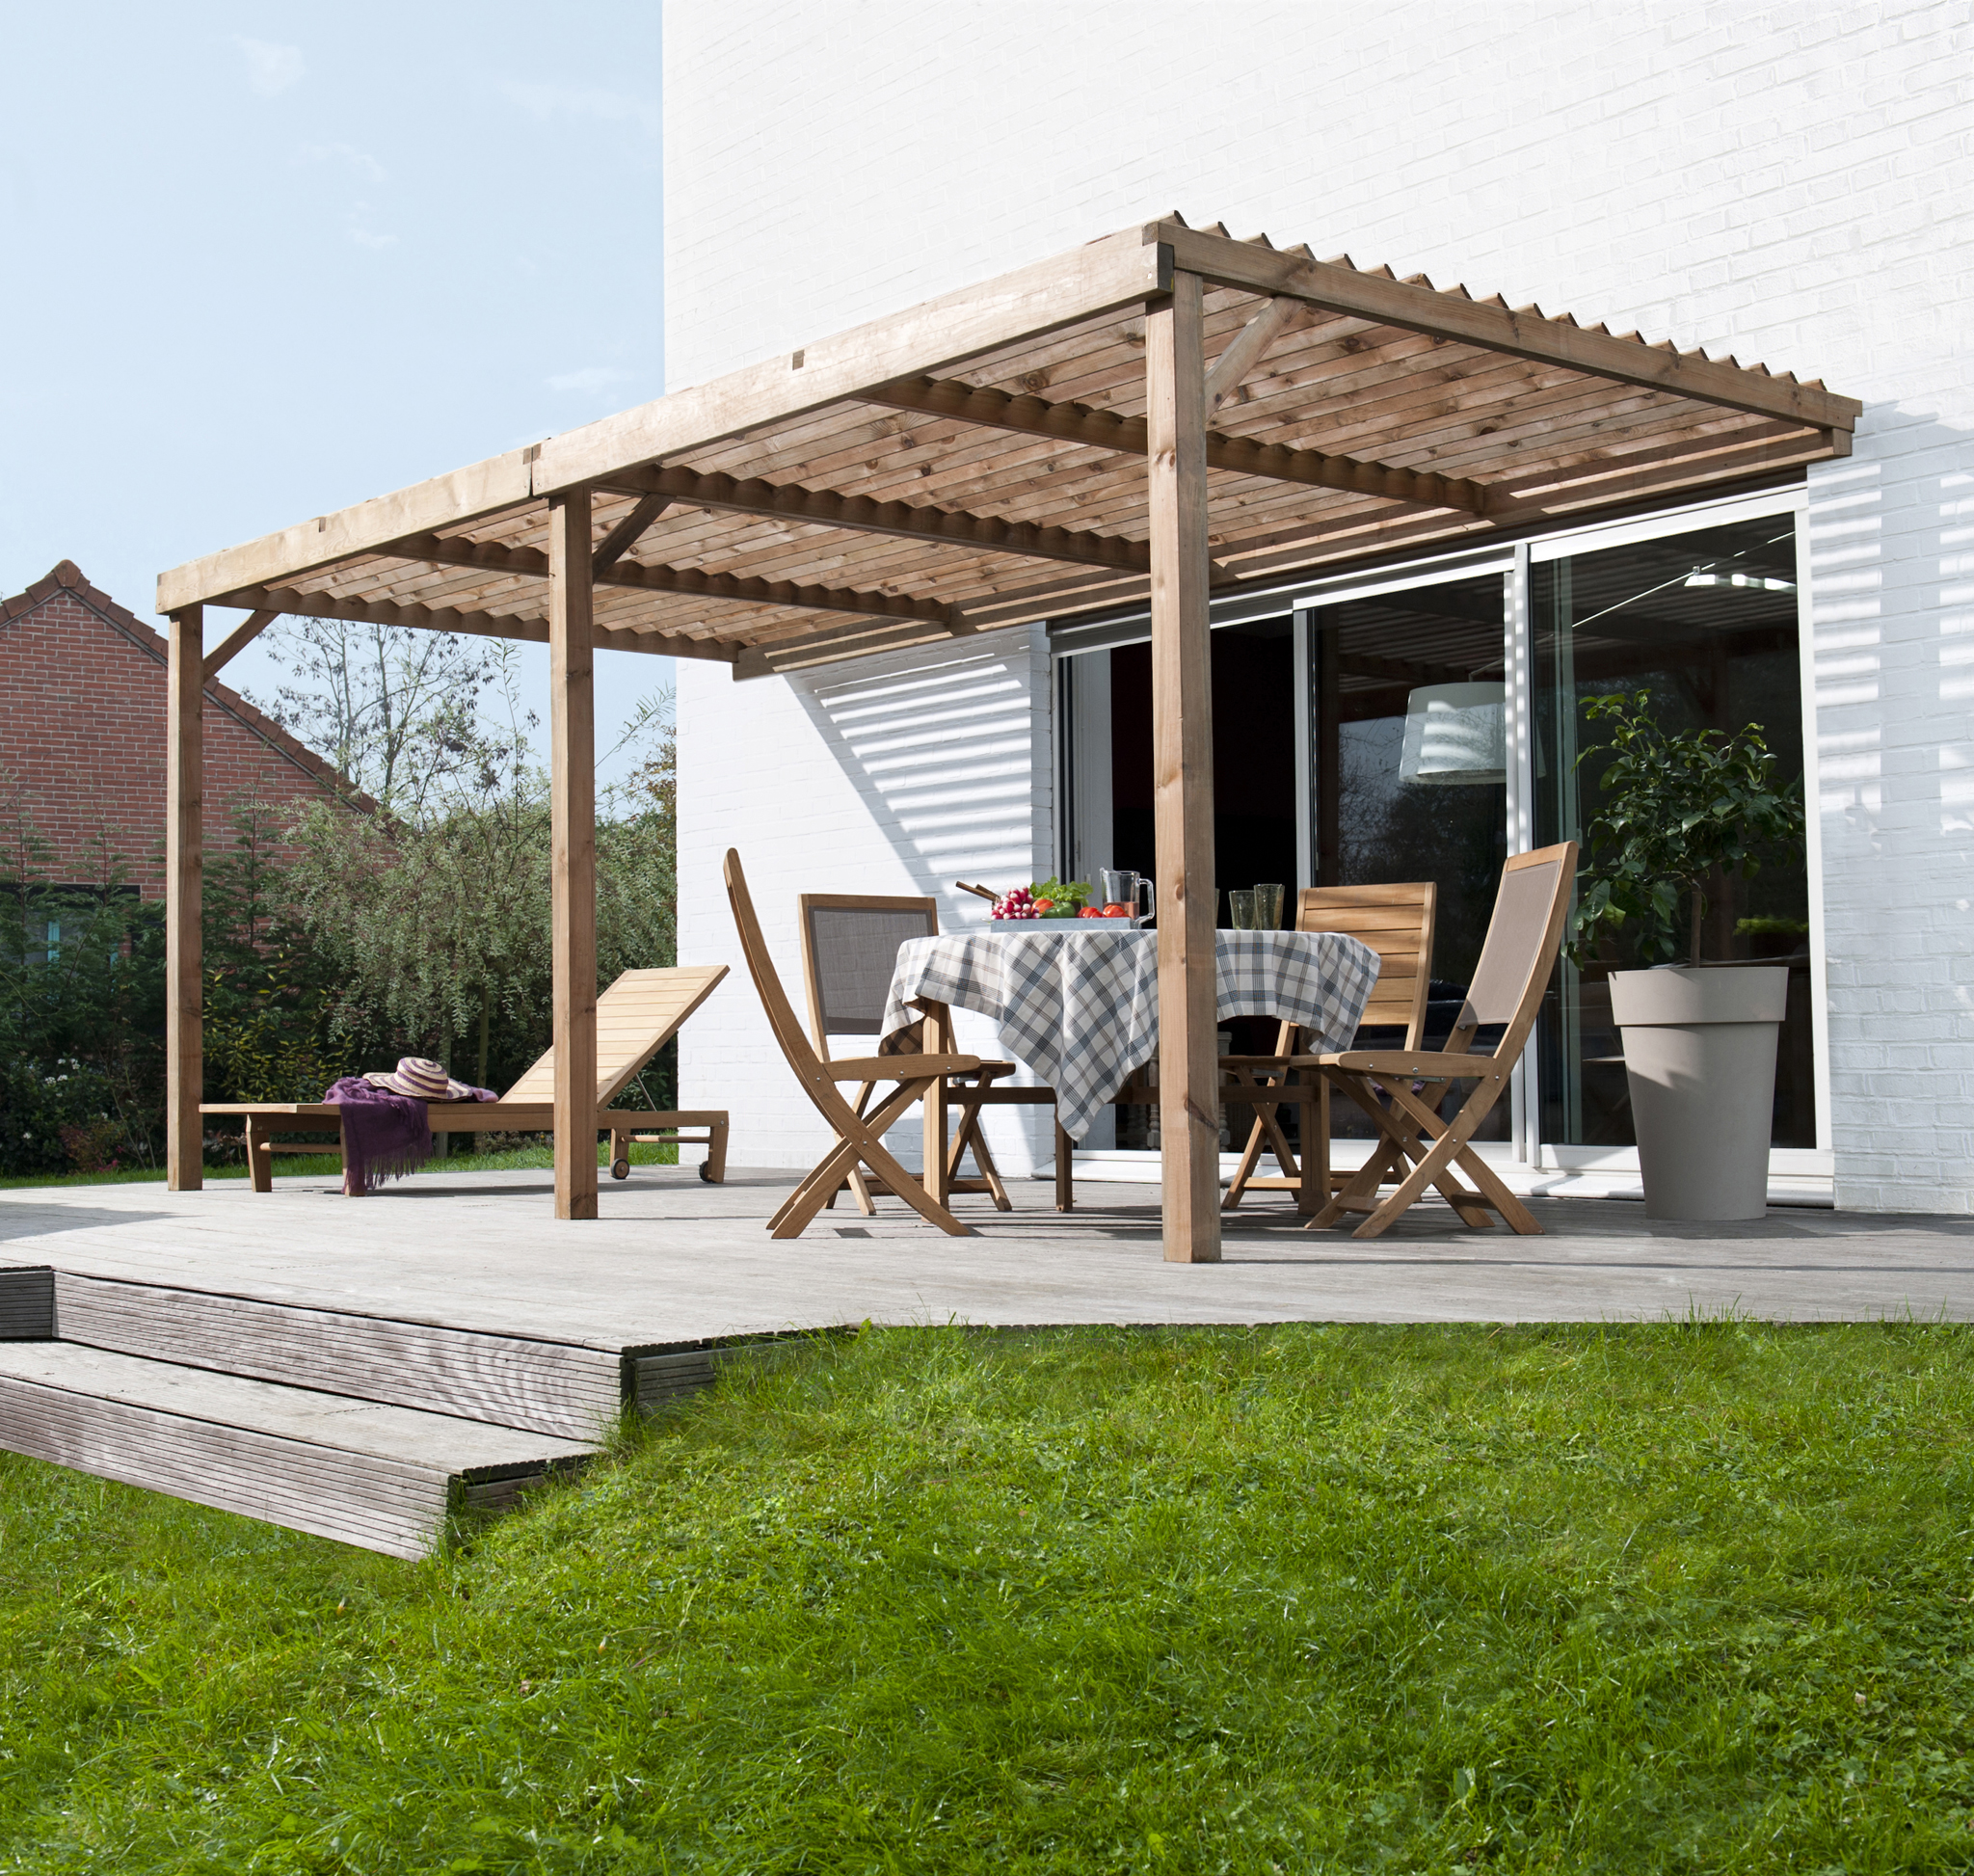 terrasse en bois avec pergola diverses id es de conception de patio en bois pour. Black Bedroom Furniture Sets. Home Design Ideas